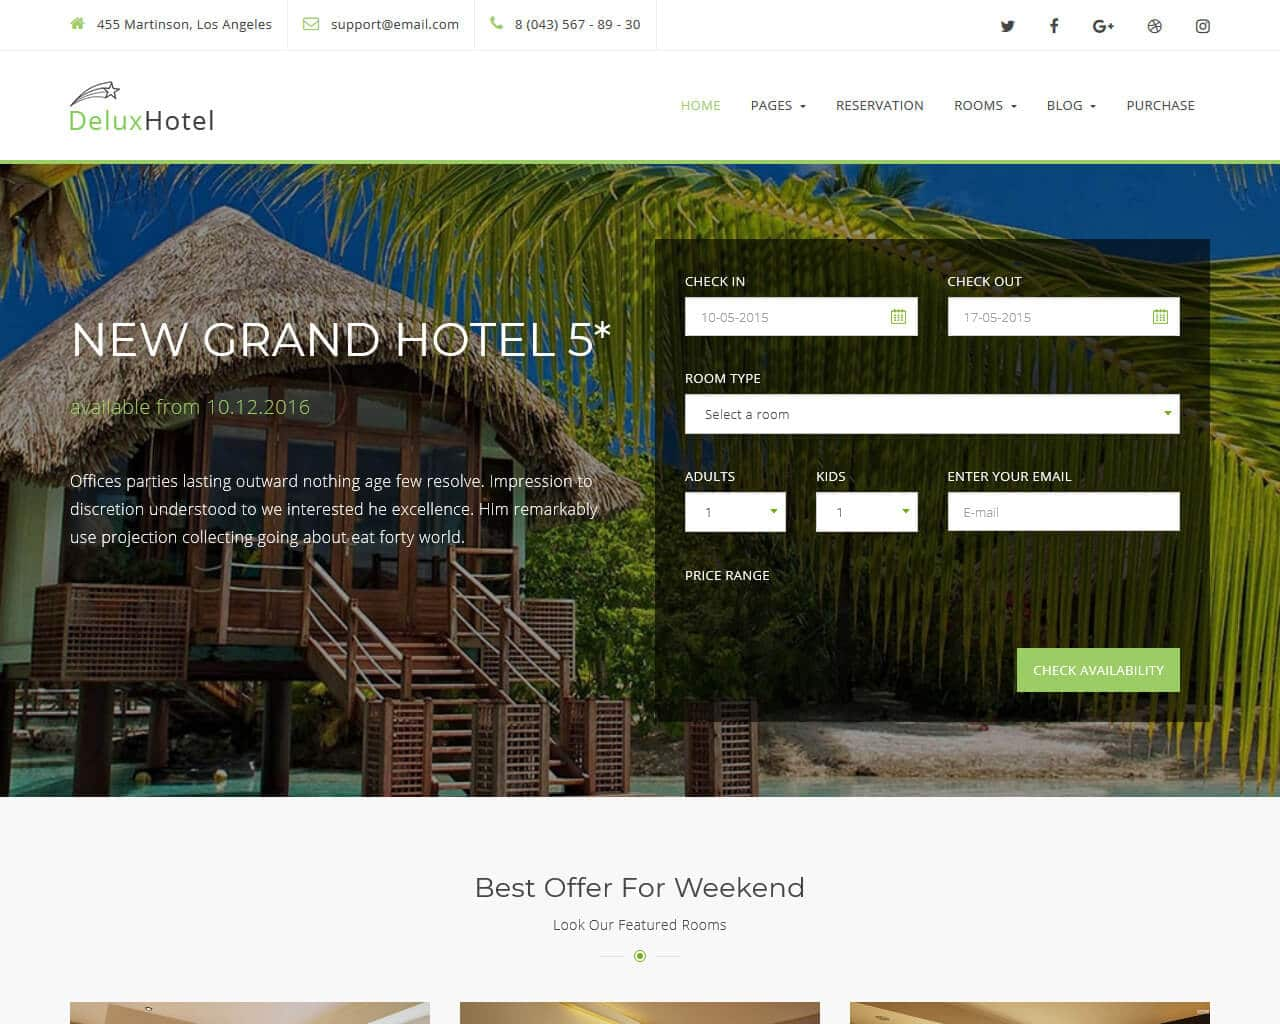 Top Hotel Website Templates to Build the Best Booking Website 2018 on simple text design, pie graph design, ms word design, page banner design, cvs design, dvb design, theming design, upload design, interactive experience design, interactive website design, spot color design, potoshop design, civil 3d design, web design, blockquote design, datatable design, openoffice design, company branding design, datagrid design, mets design,